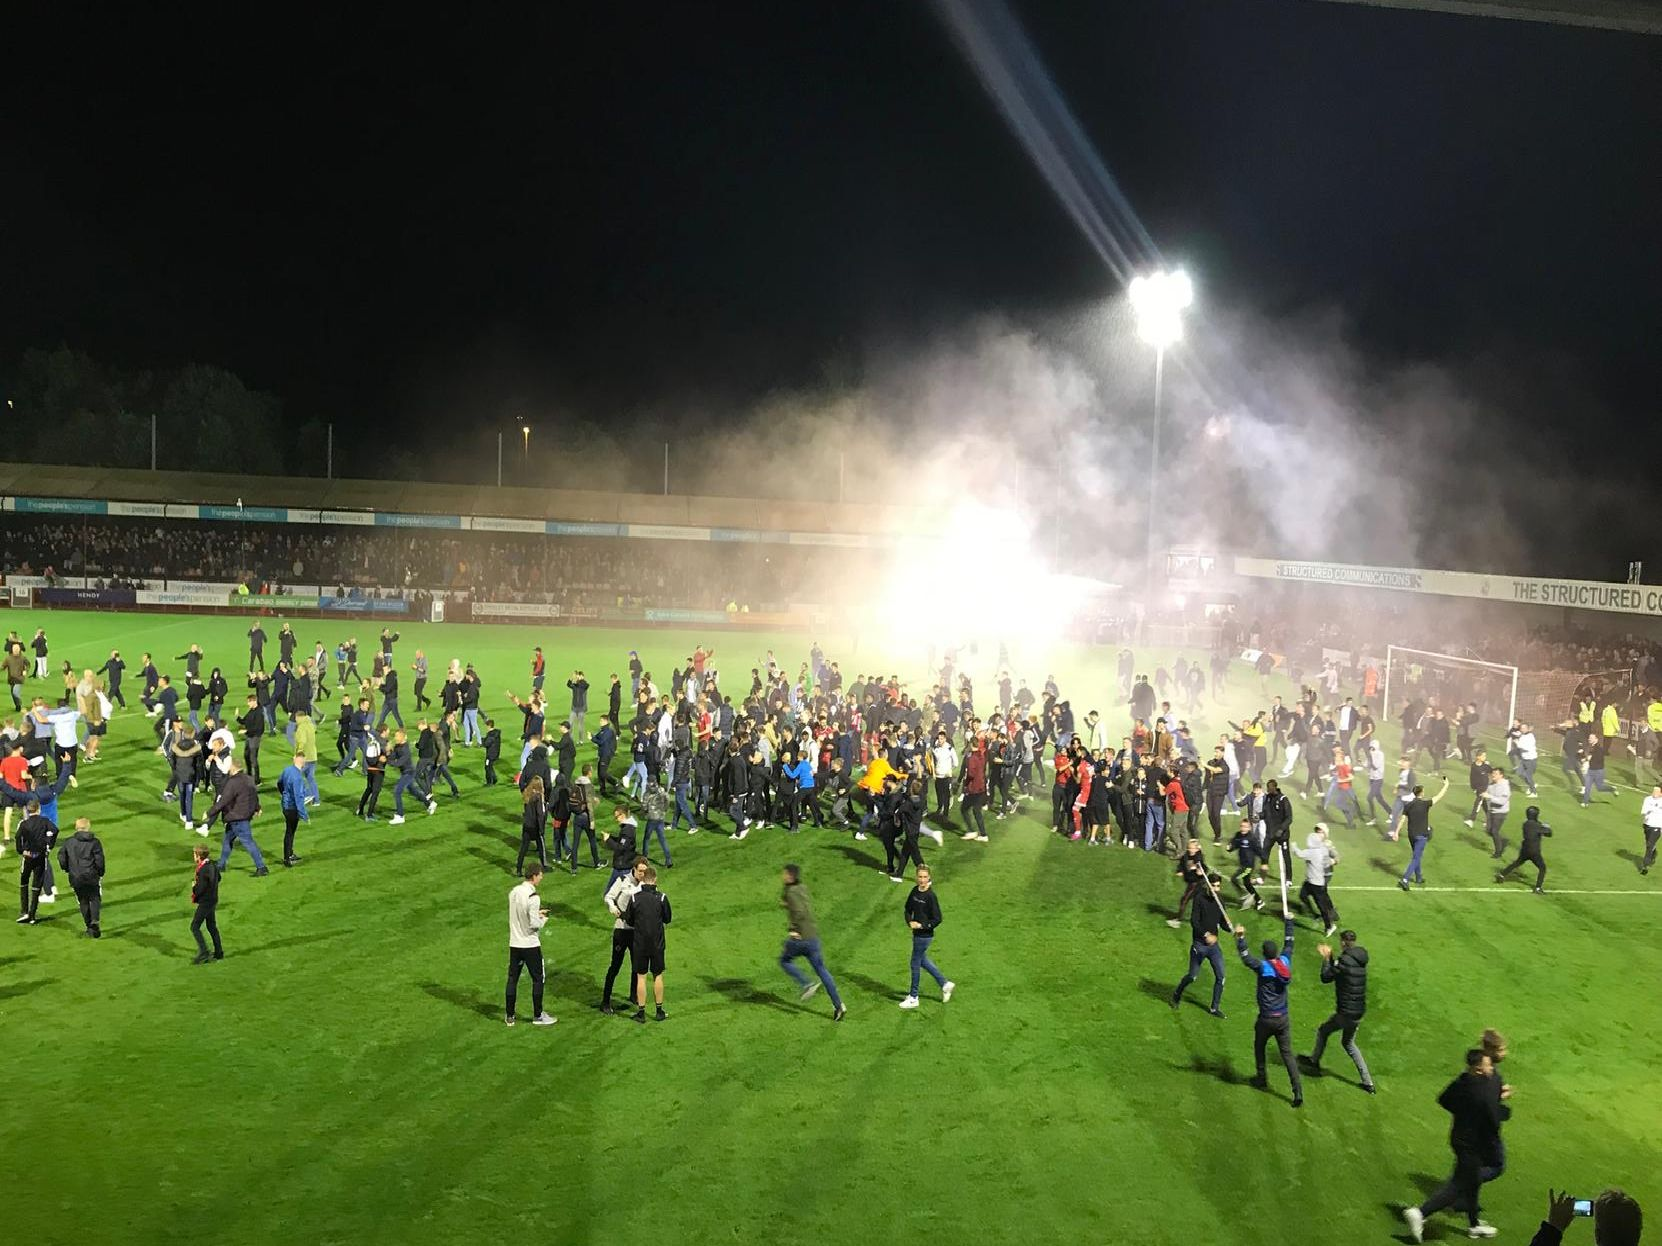 Crawley fans celebrate by invading the pitch after Ollie Palmer's winning penalty